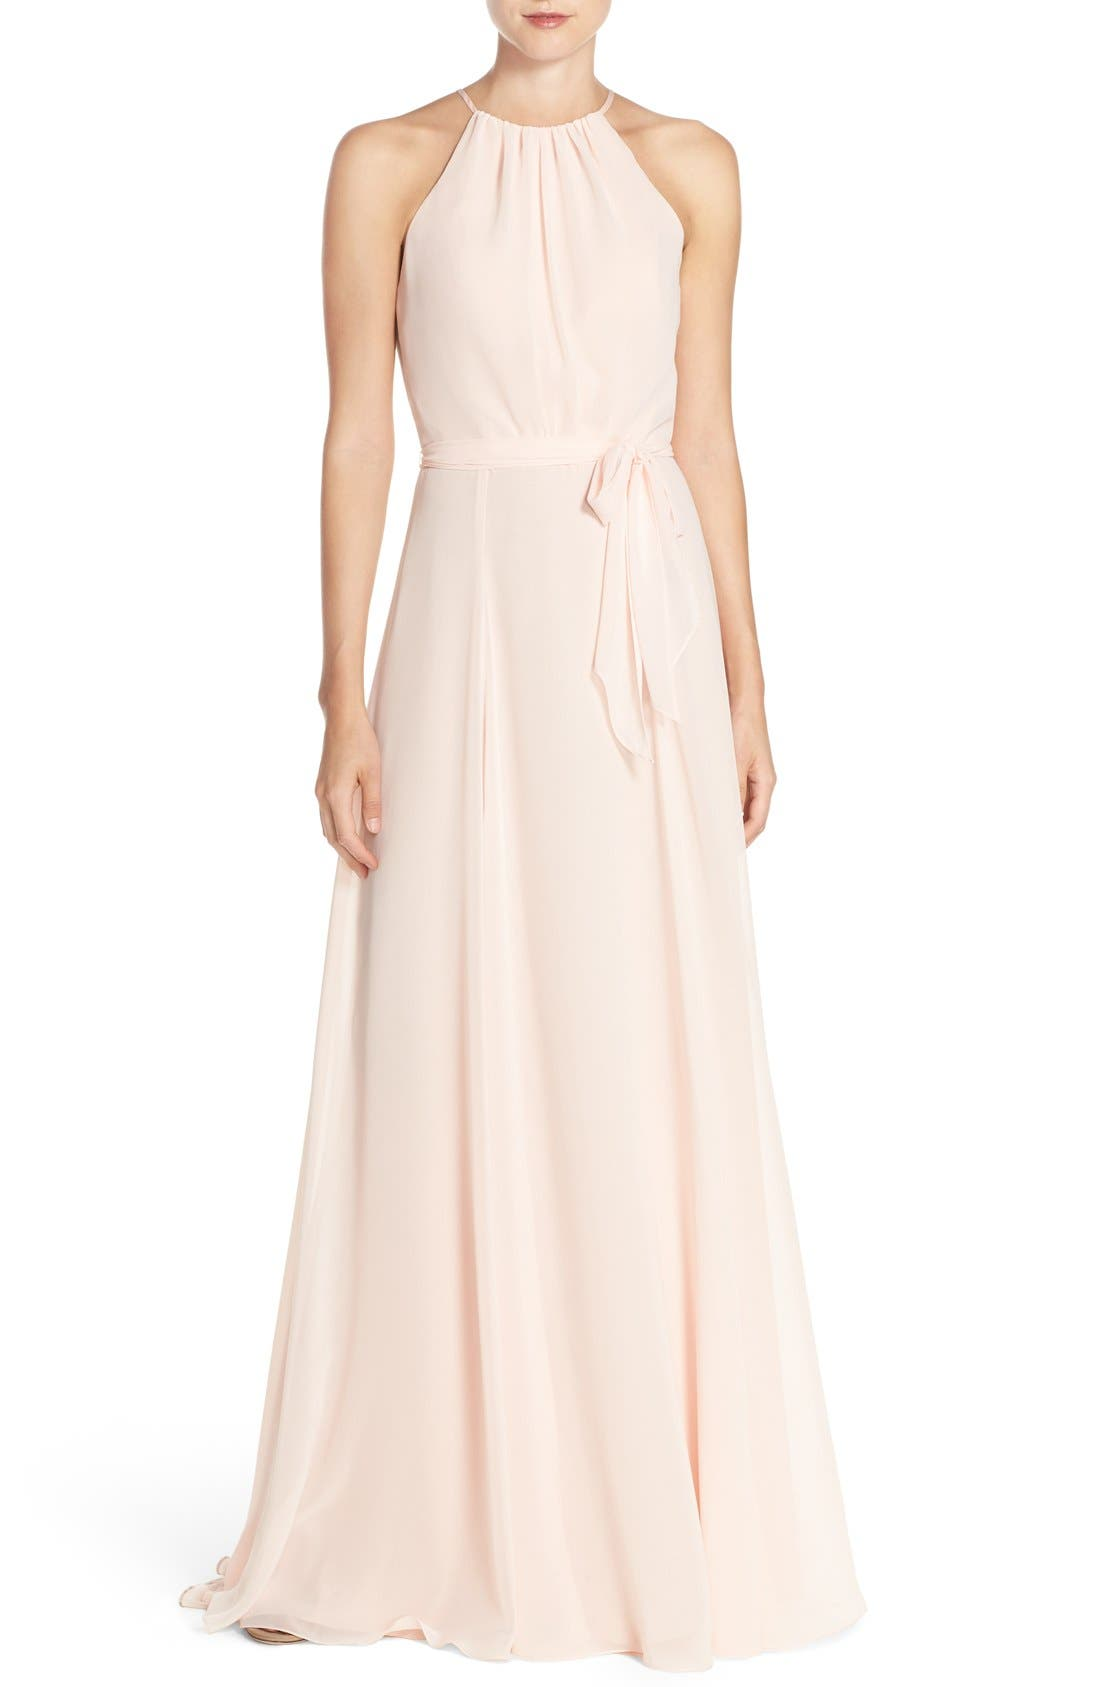 'Delaney' Belted A-Line Chiffon Halter Dress,                             Main thumbnail 1, color,                             Blush